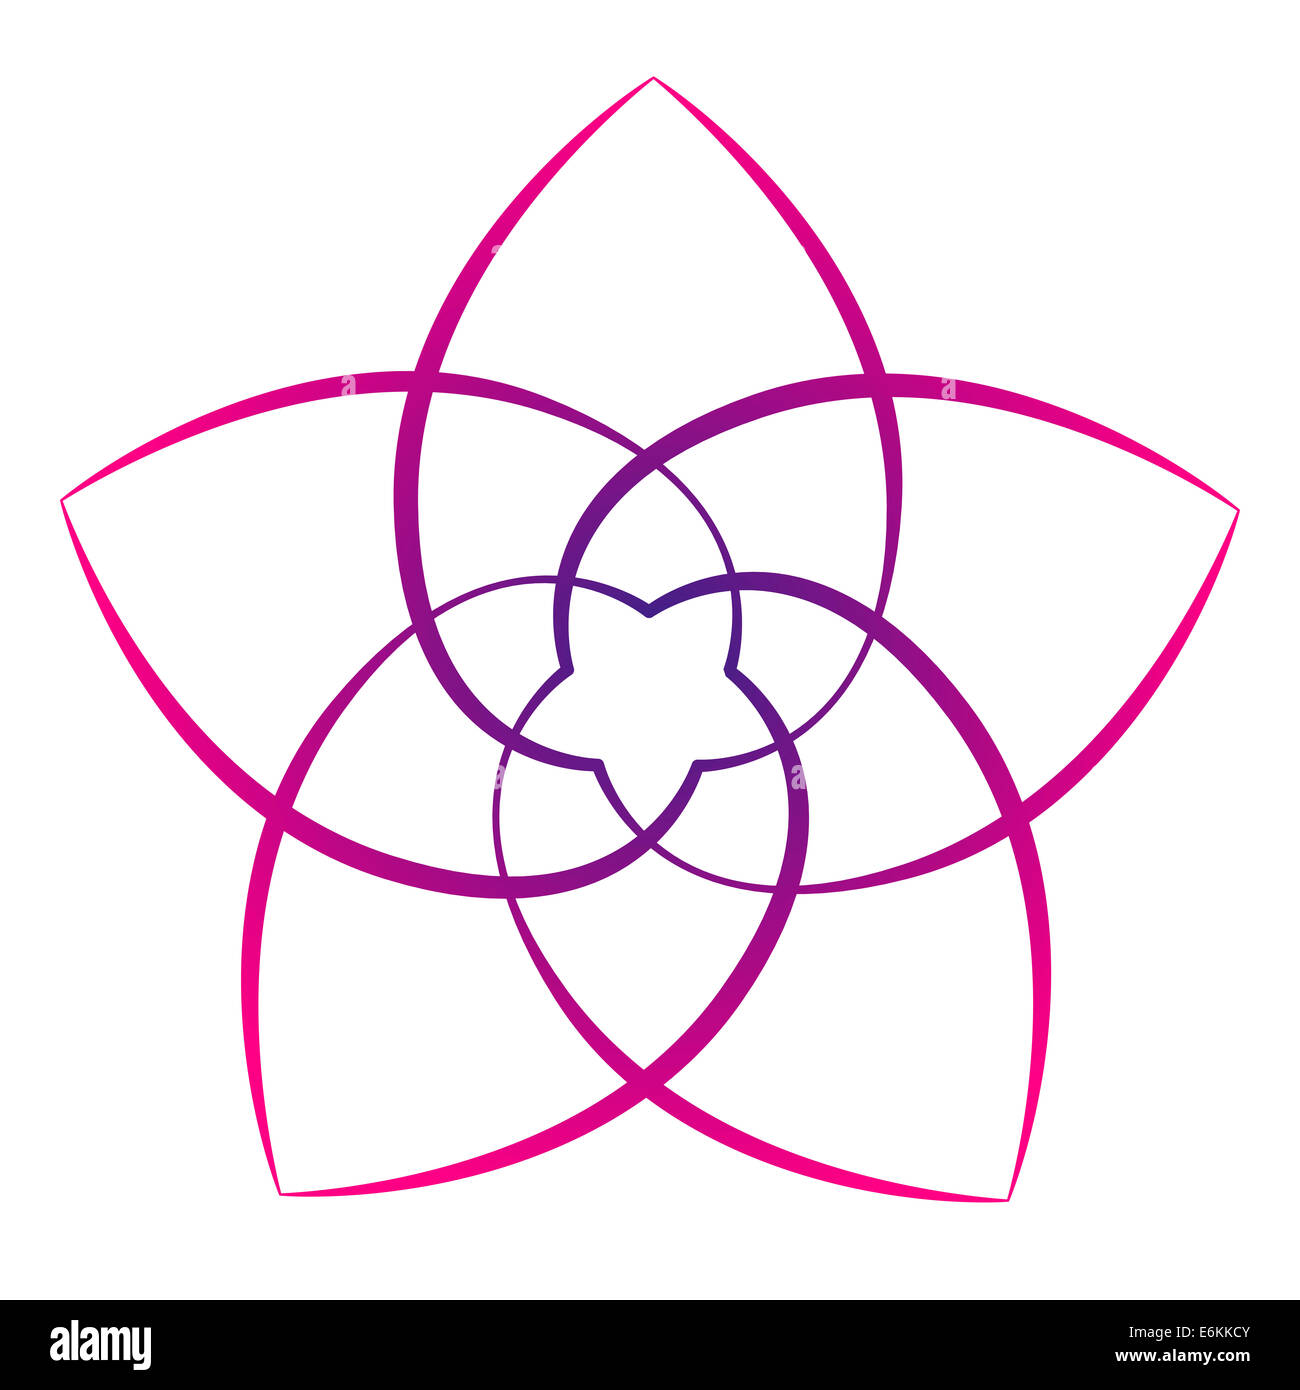 Pink Flower Of The Venus Symbol Of Love And Harmony Stock Photo